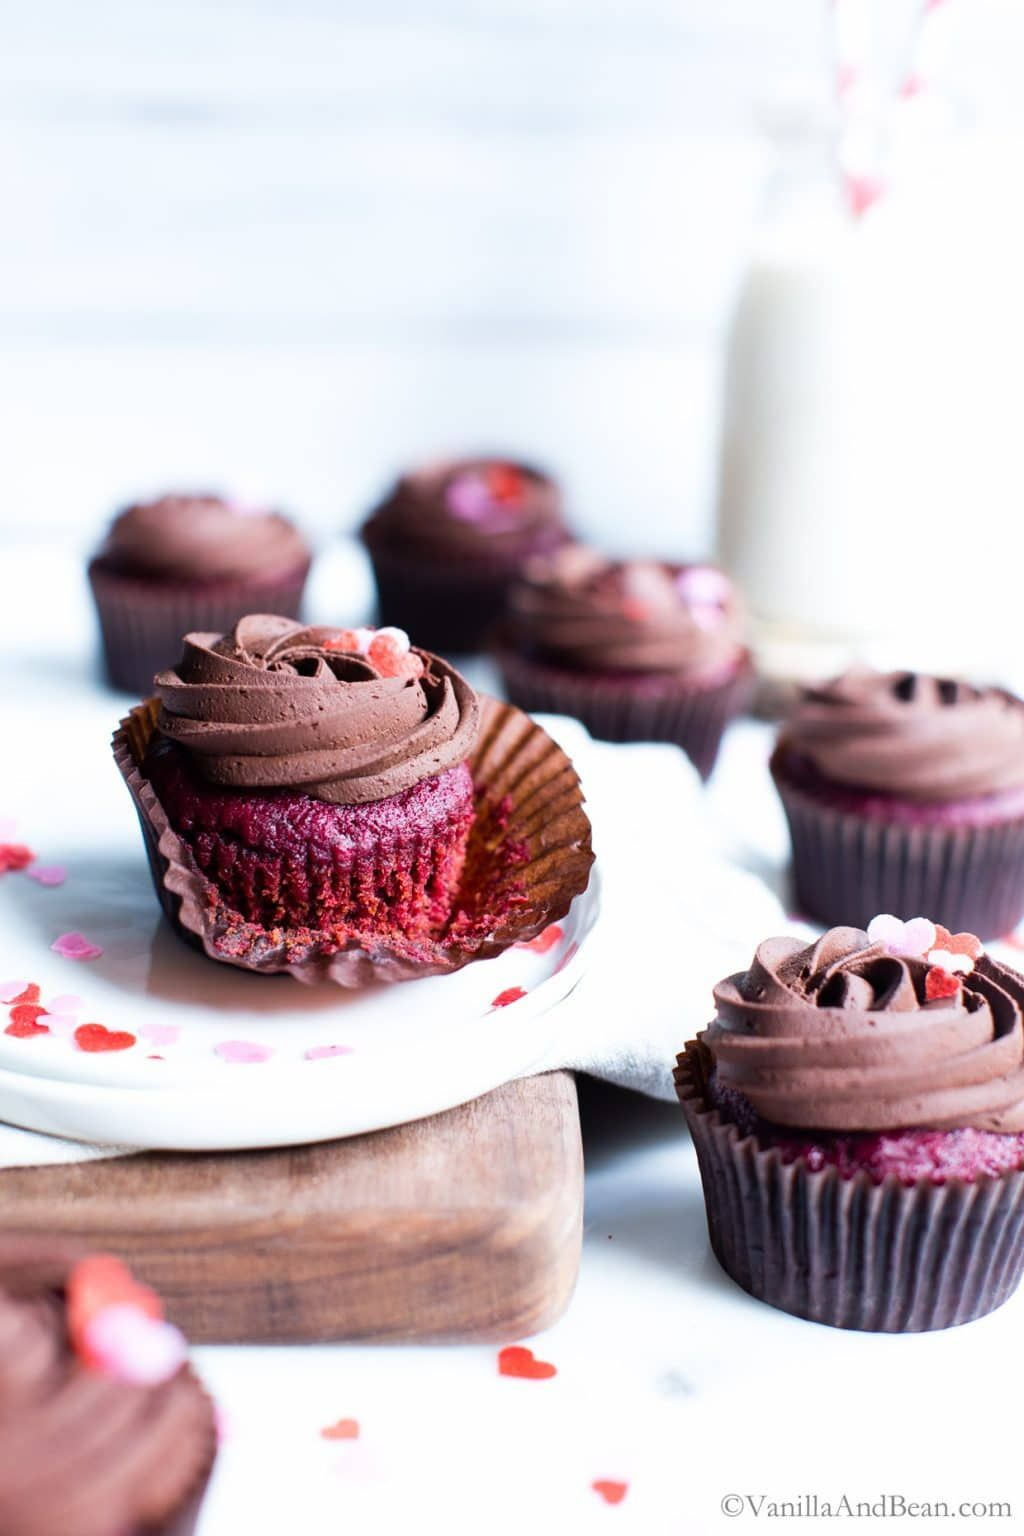 Vegan Beet Red Velvet Cupcakes With Whipped Chocolate Ganache Vanilla And Bean In 2020 Whipped Chocolate Ganache Chocolate Ganache Red Velvet Cupcakes